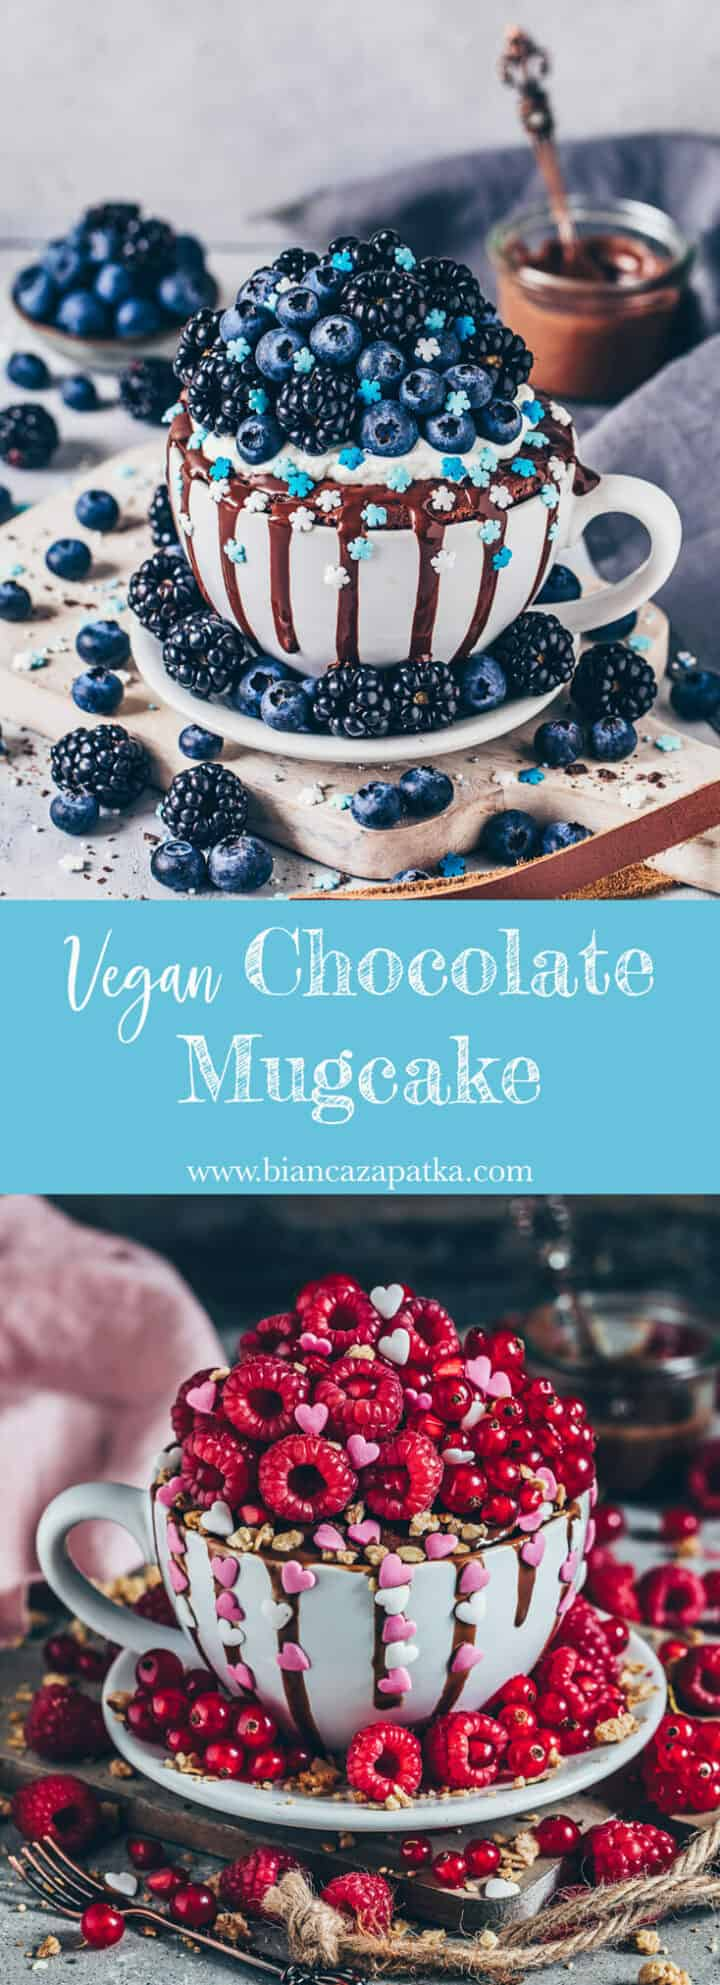 This Vegan Chocolate Mugcake is very easy and quick to make. So delicious and the perfect simple dessert.